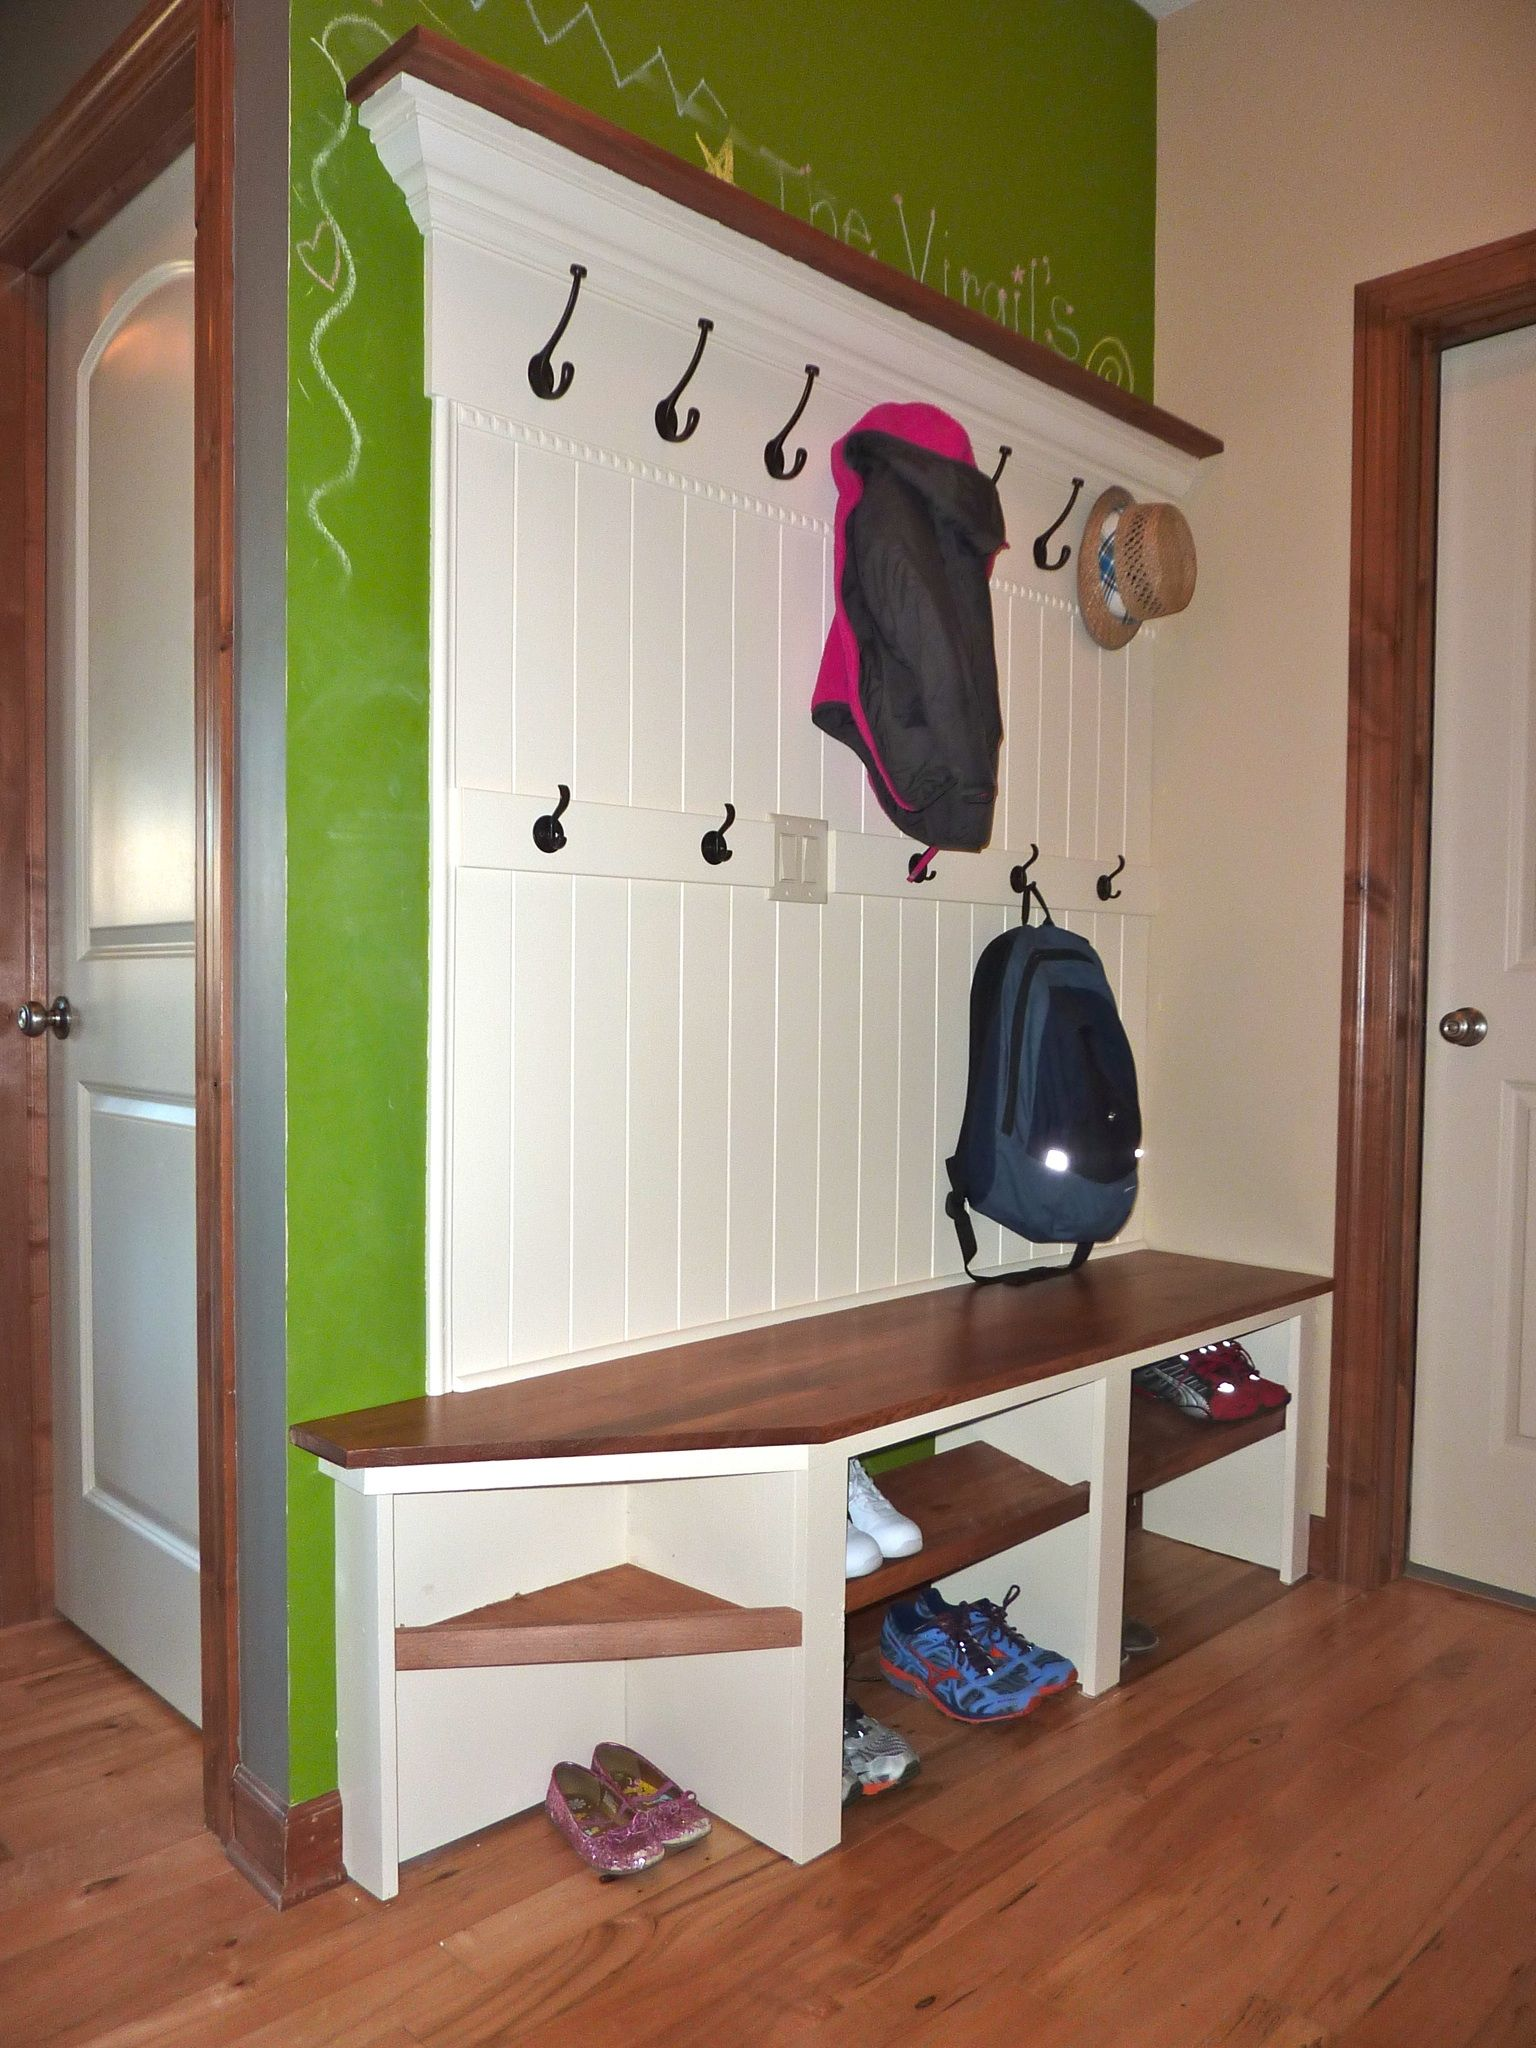 Storage ideas for hallway  Mudroom bench  friendus hubby MADE this  Remodeling Ideas